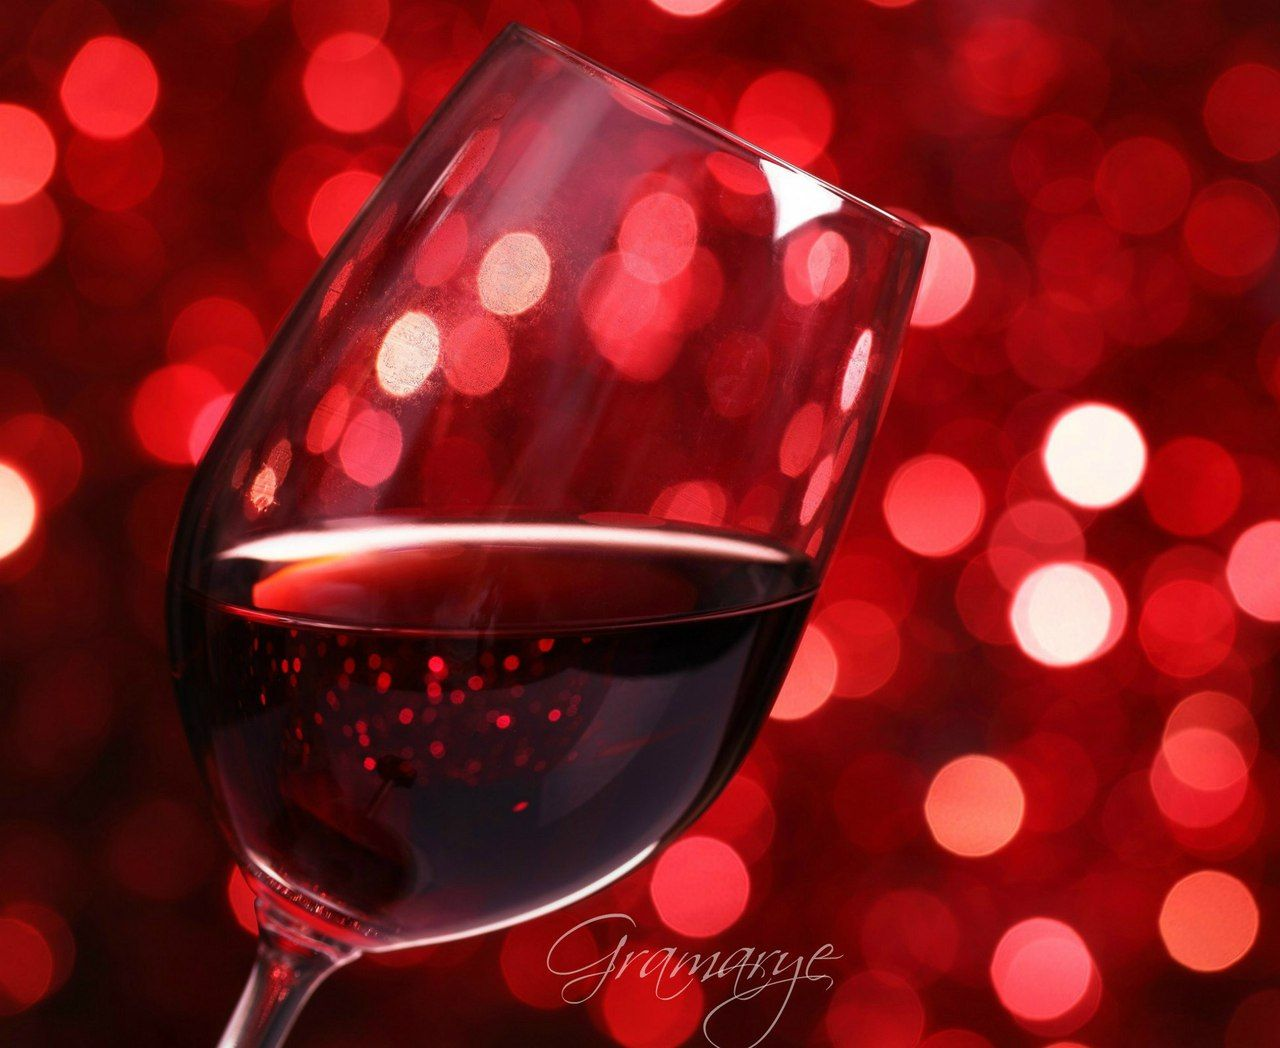 Pin By Celia Olson On Simply Red Wine Wallpaper Wine Red Wine